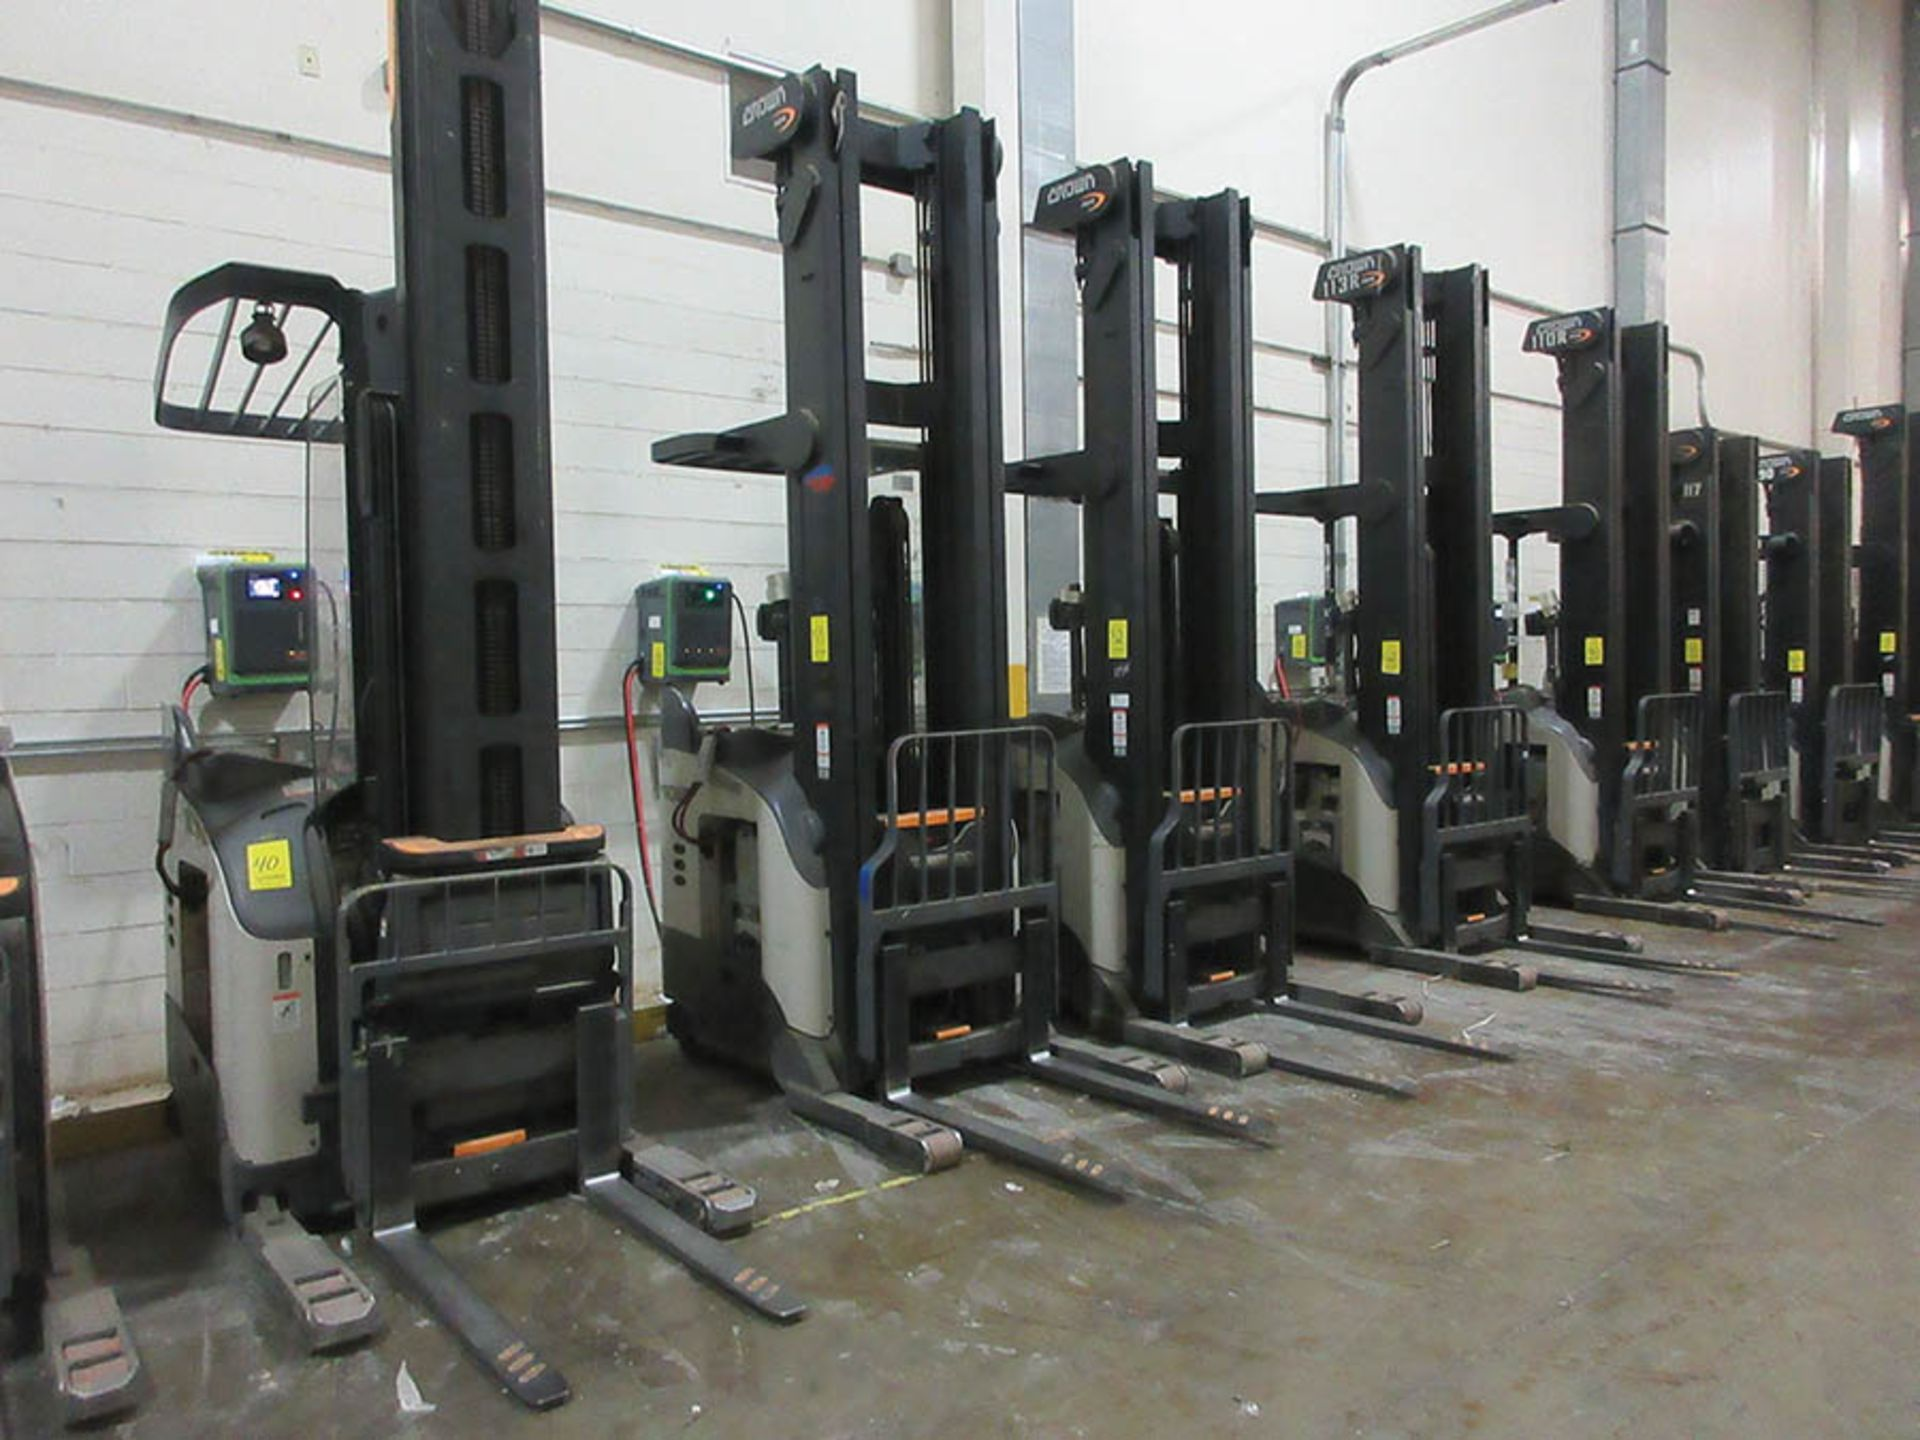 Lot 53 - 2016 CROWN REACH TRUCK, 4,500 LB. CAP., MODEL: RR5725-45, 36V., 140'' MAST COLLAPSED HEIGHT, 321''